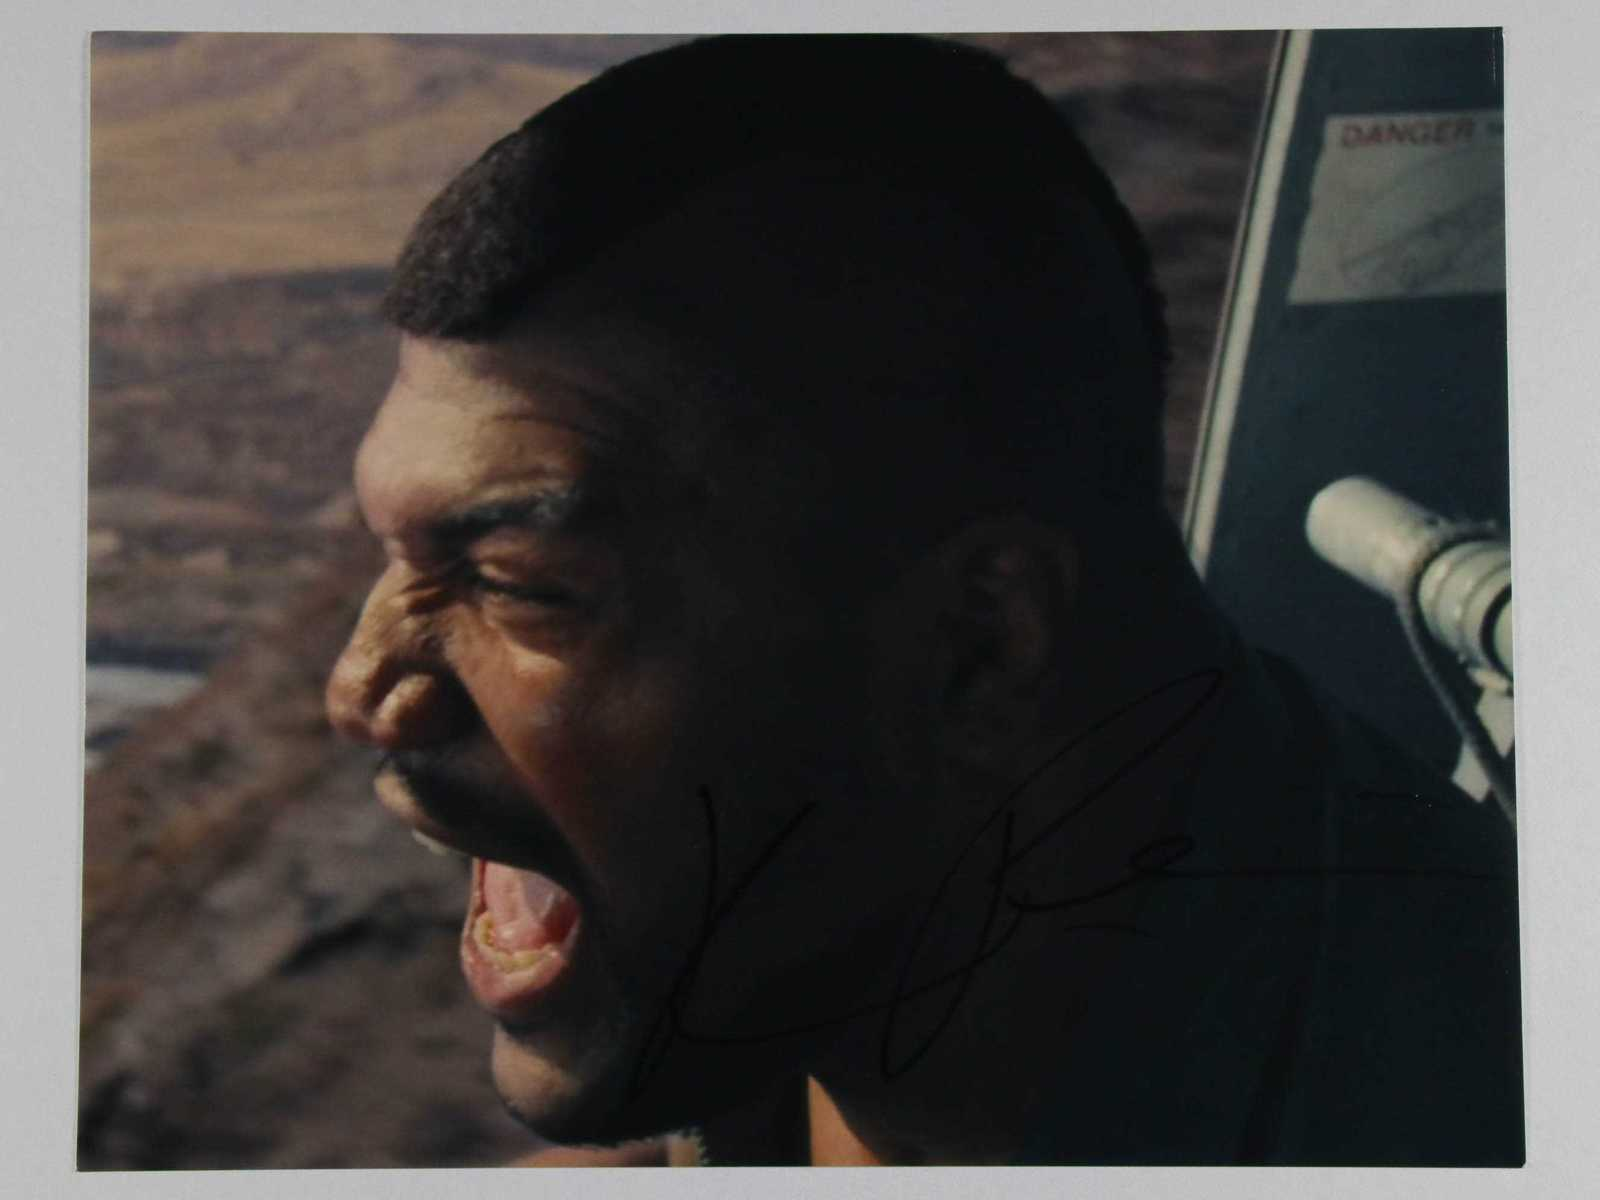 Primary image for Rampage Jackson Signed Autographed Glossy 8x10 Photo